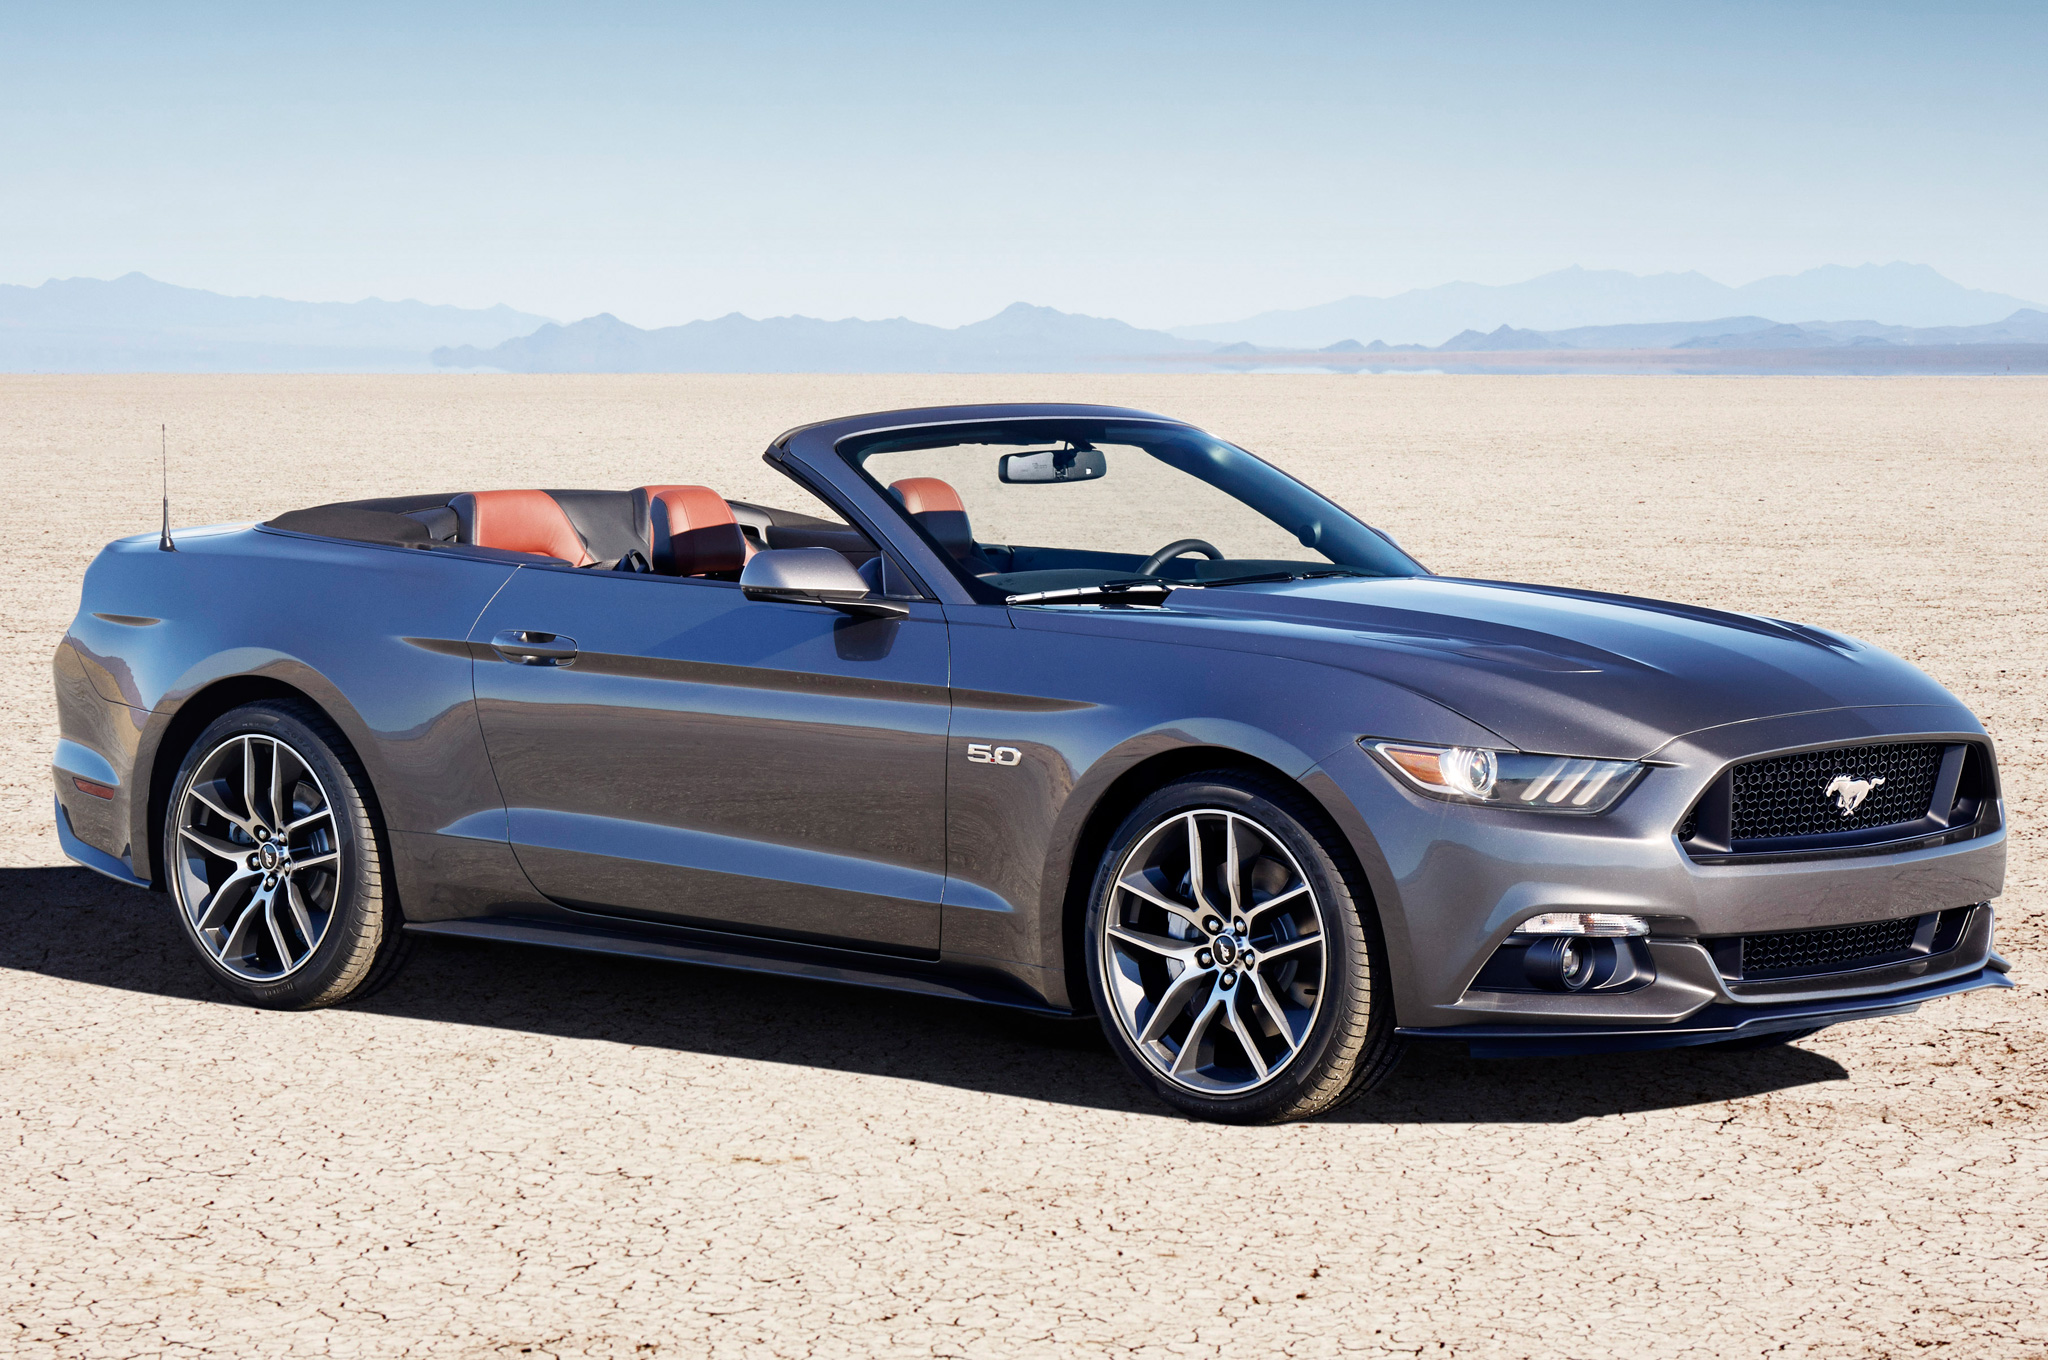 2015 ford mustang convertible wallpaper picture size 2048x1360 posted